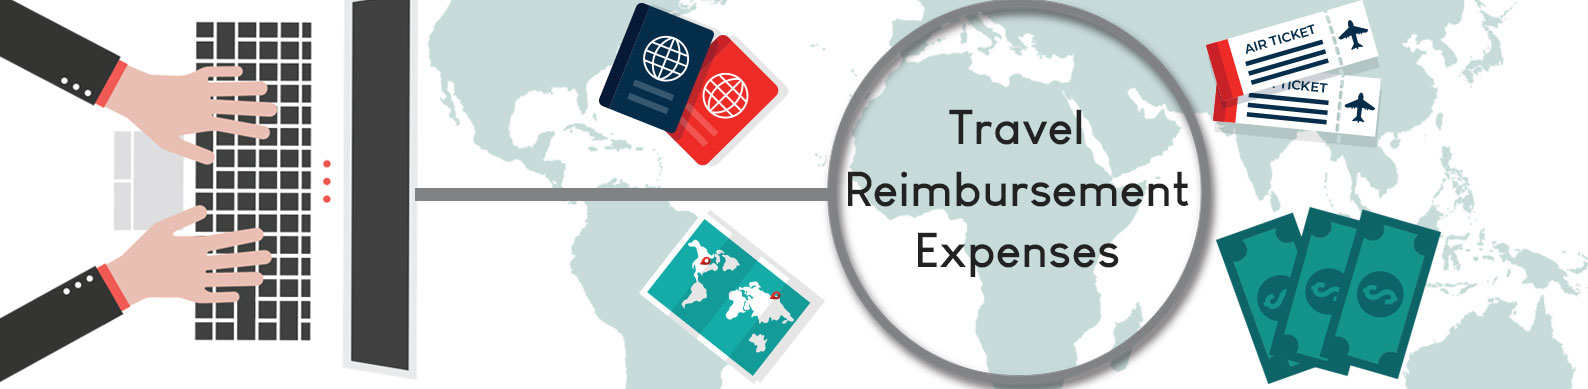 travel-reimbursement-ehrms